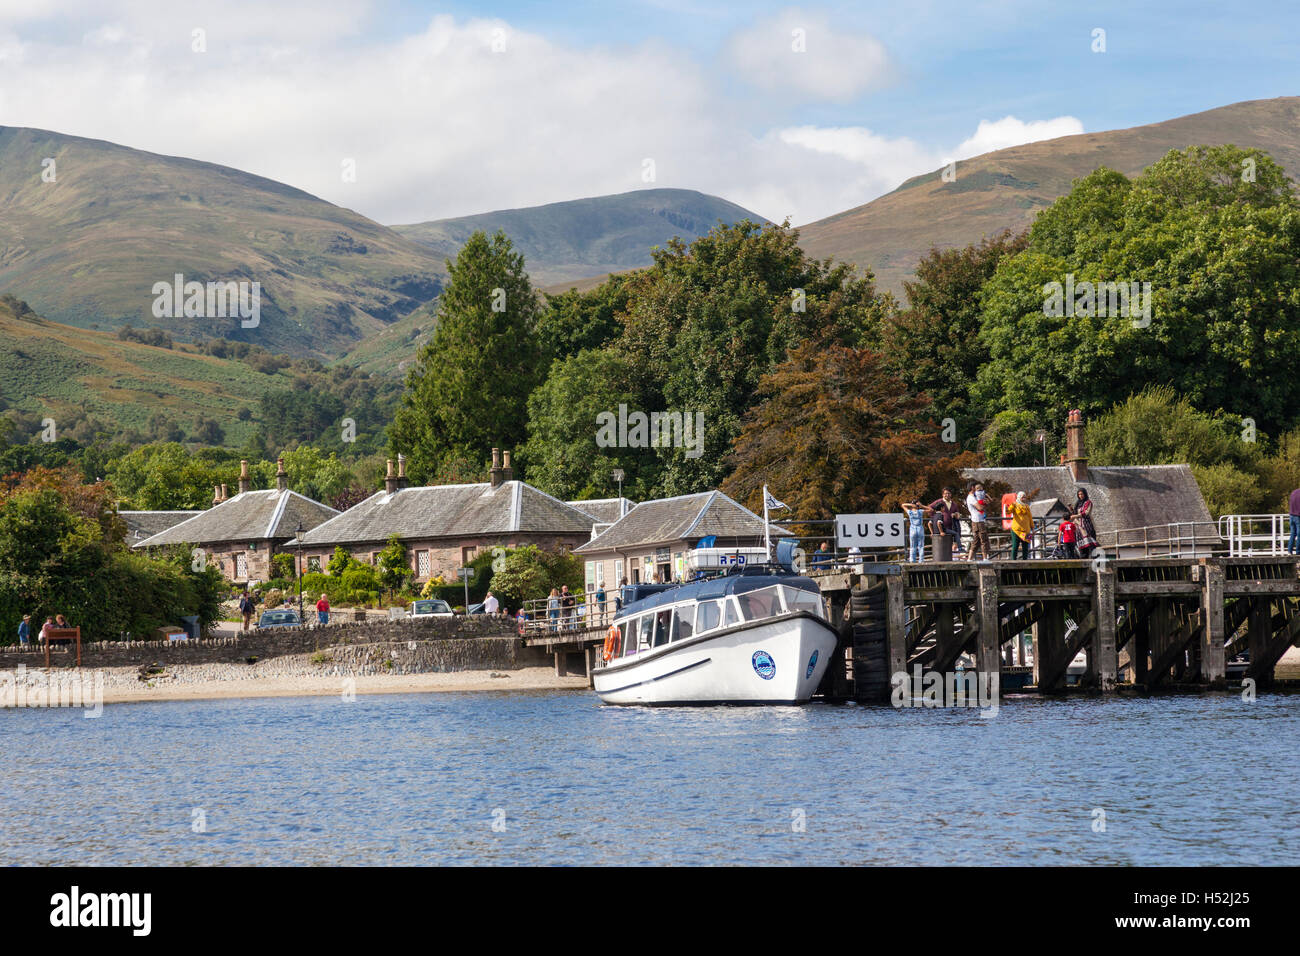 The picturesque village of Luss on the banks of Loch Lomond, Argyll & Bute, Scotland UK - Stock Image